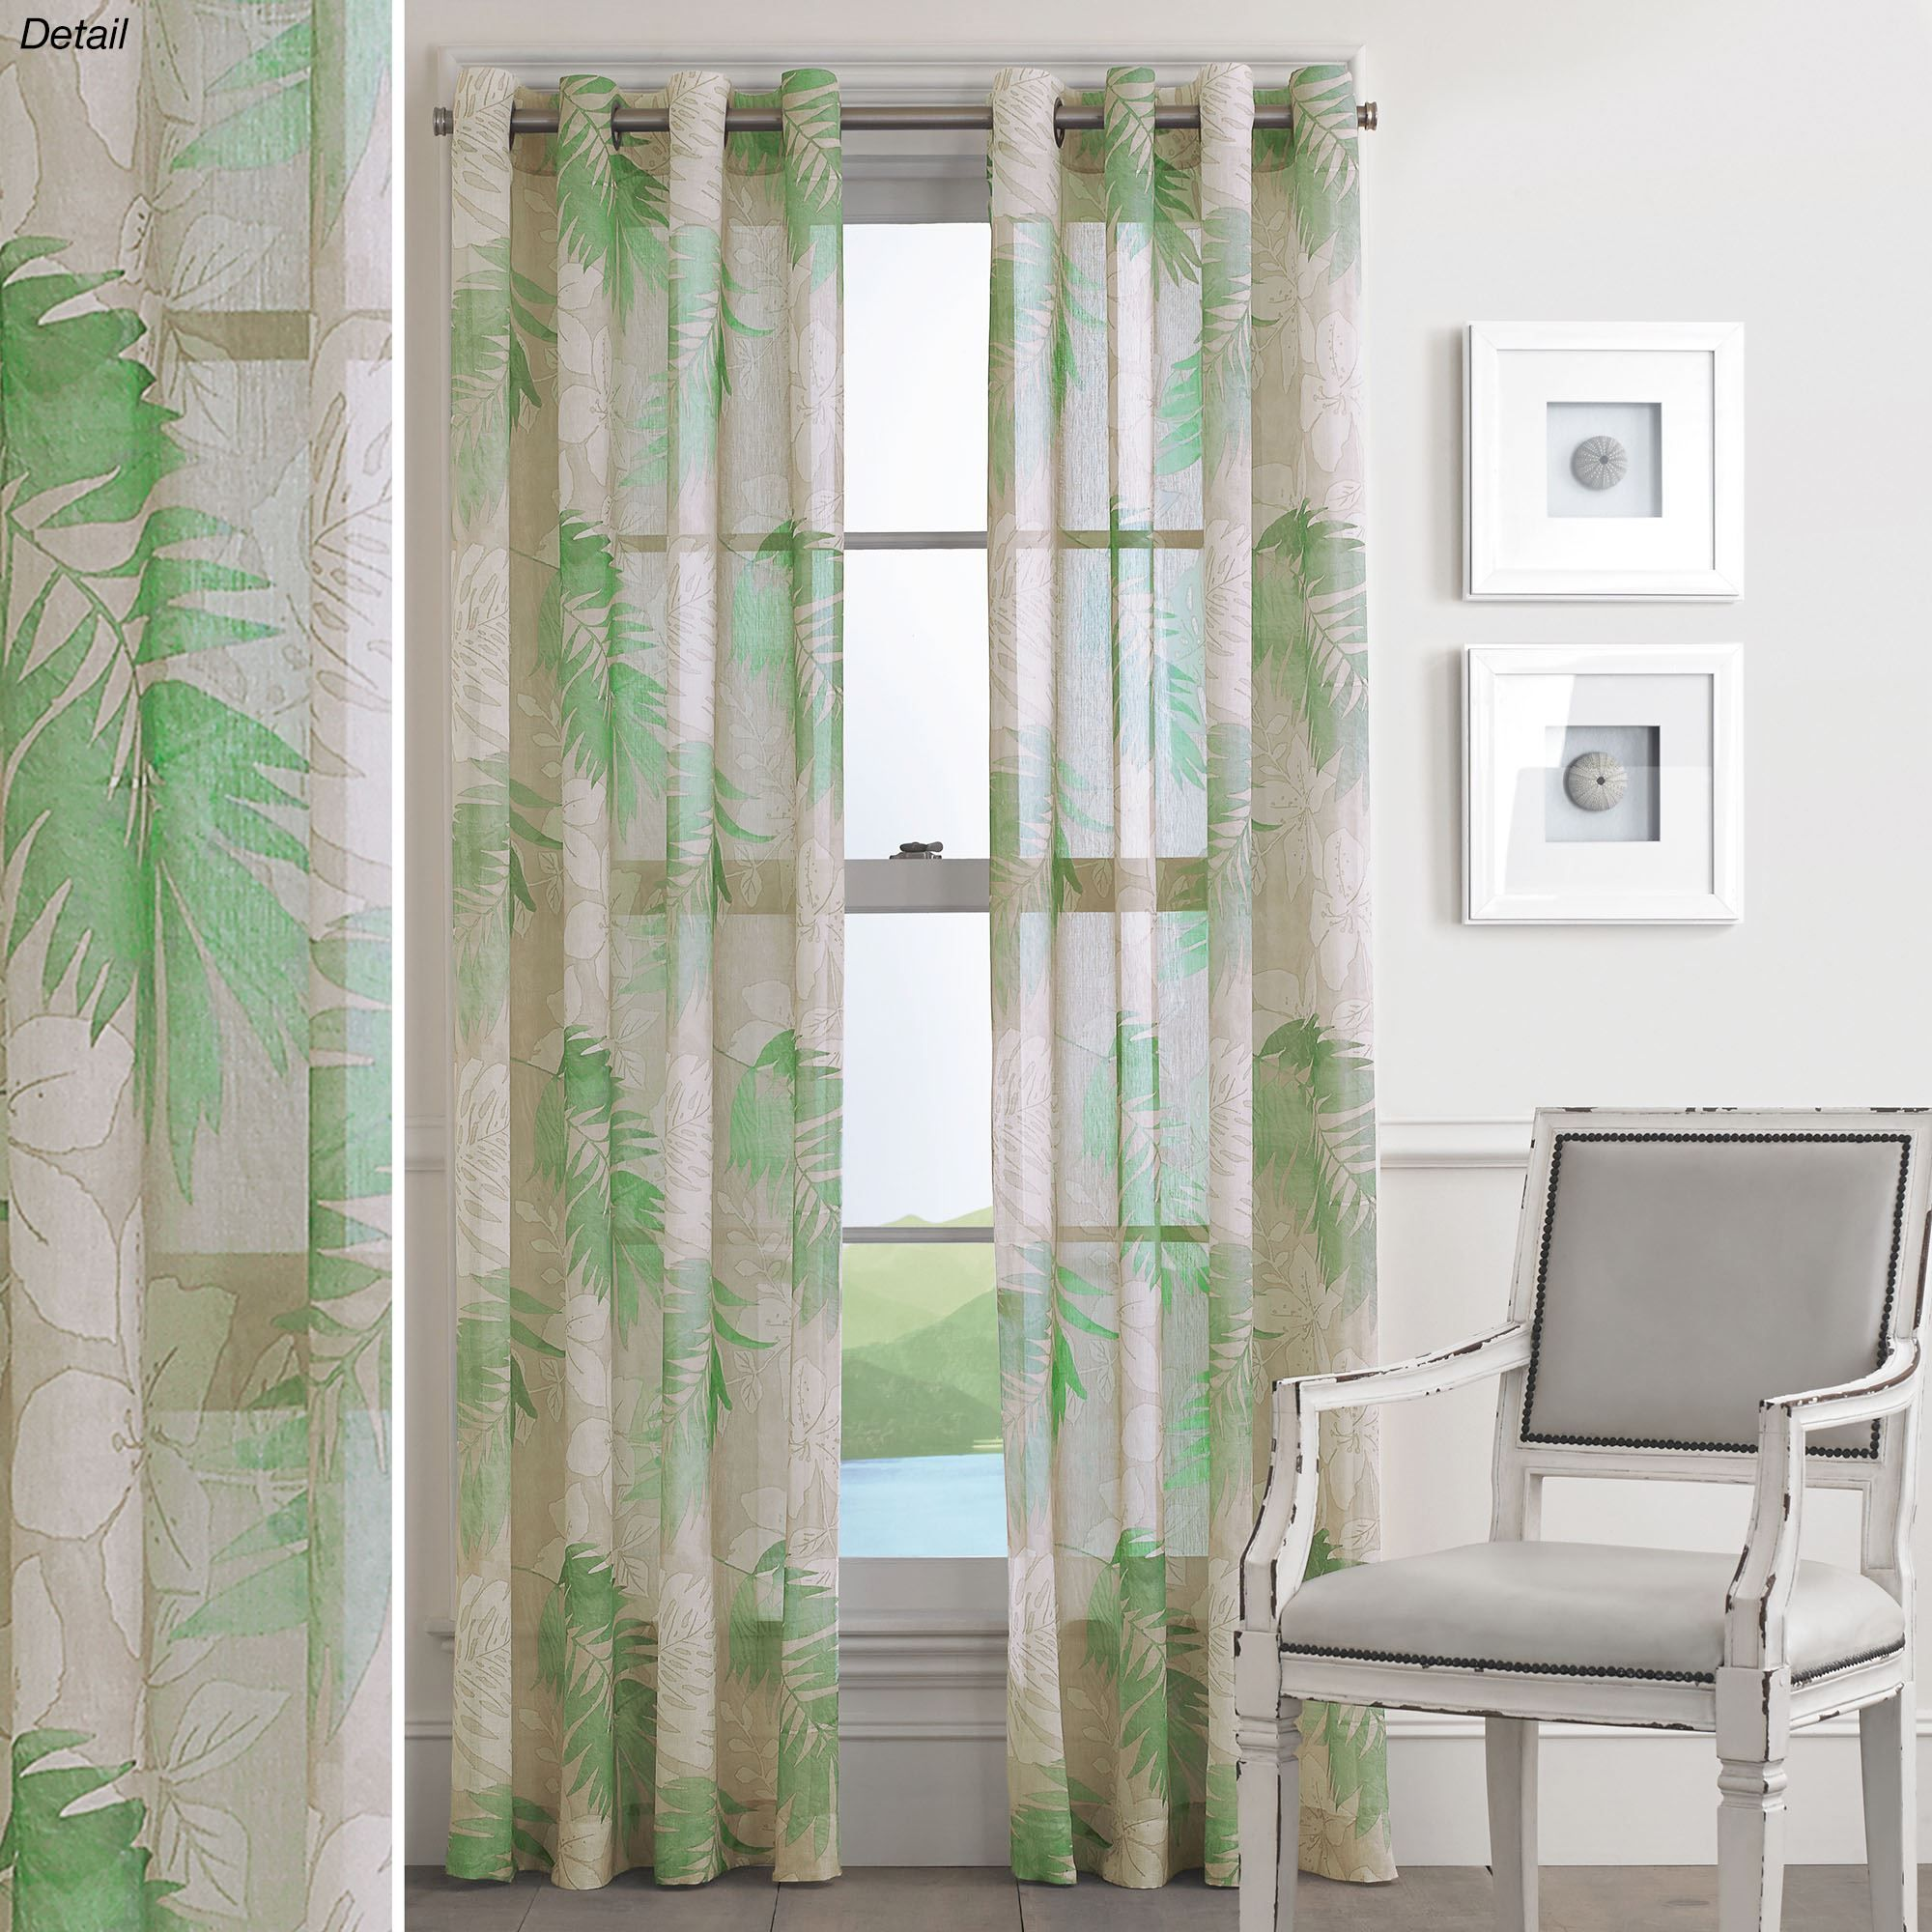 Green Curtains Panel Tropical Grommet Window Panels Curtain